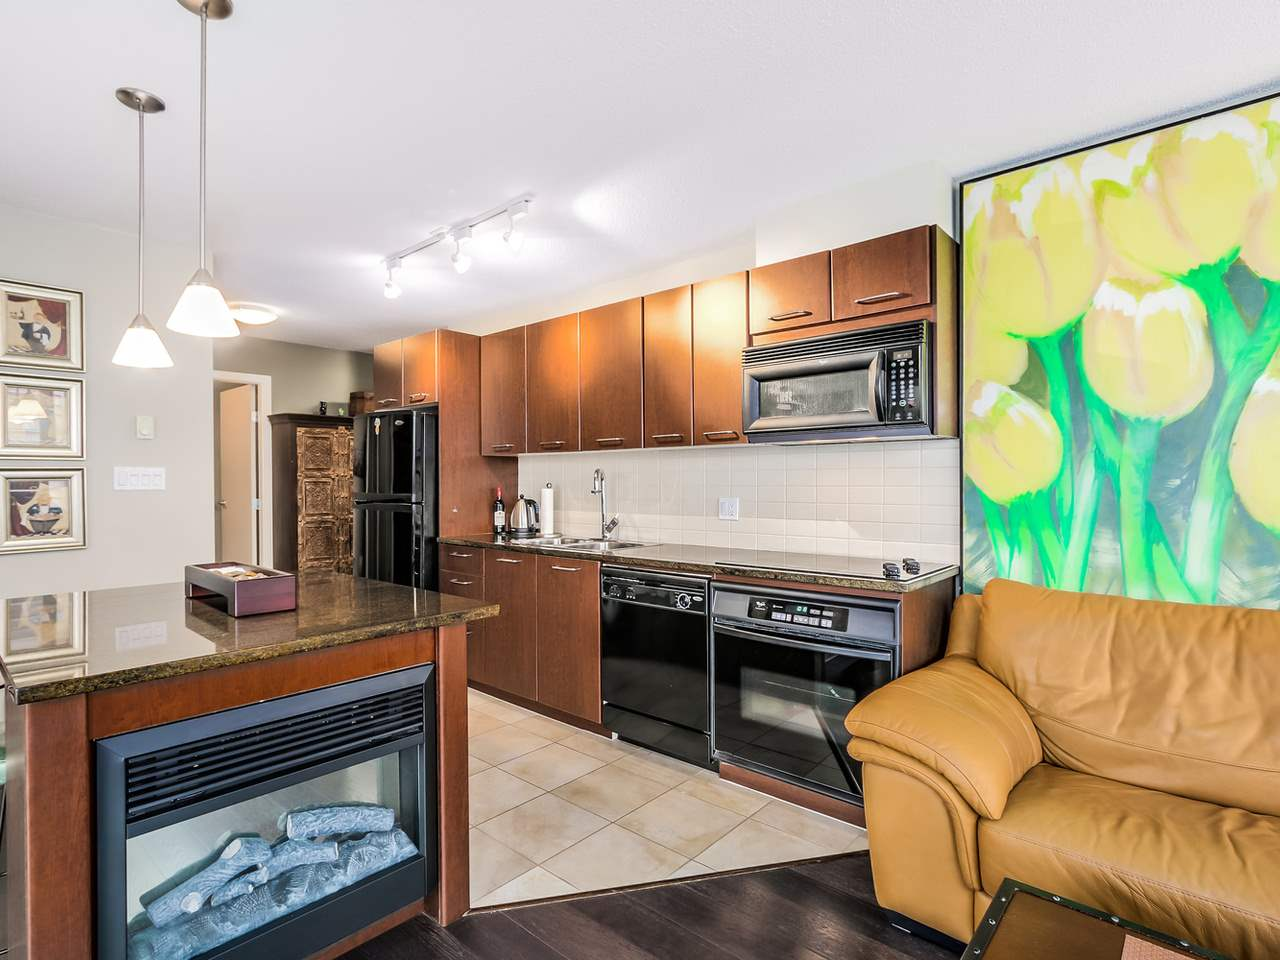 Photo 6: 2308 1155 SEYMOUR STREET in Vancouver: Downtown VW Condo for sale (Vancouver West)  : MLS® # R2026499